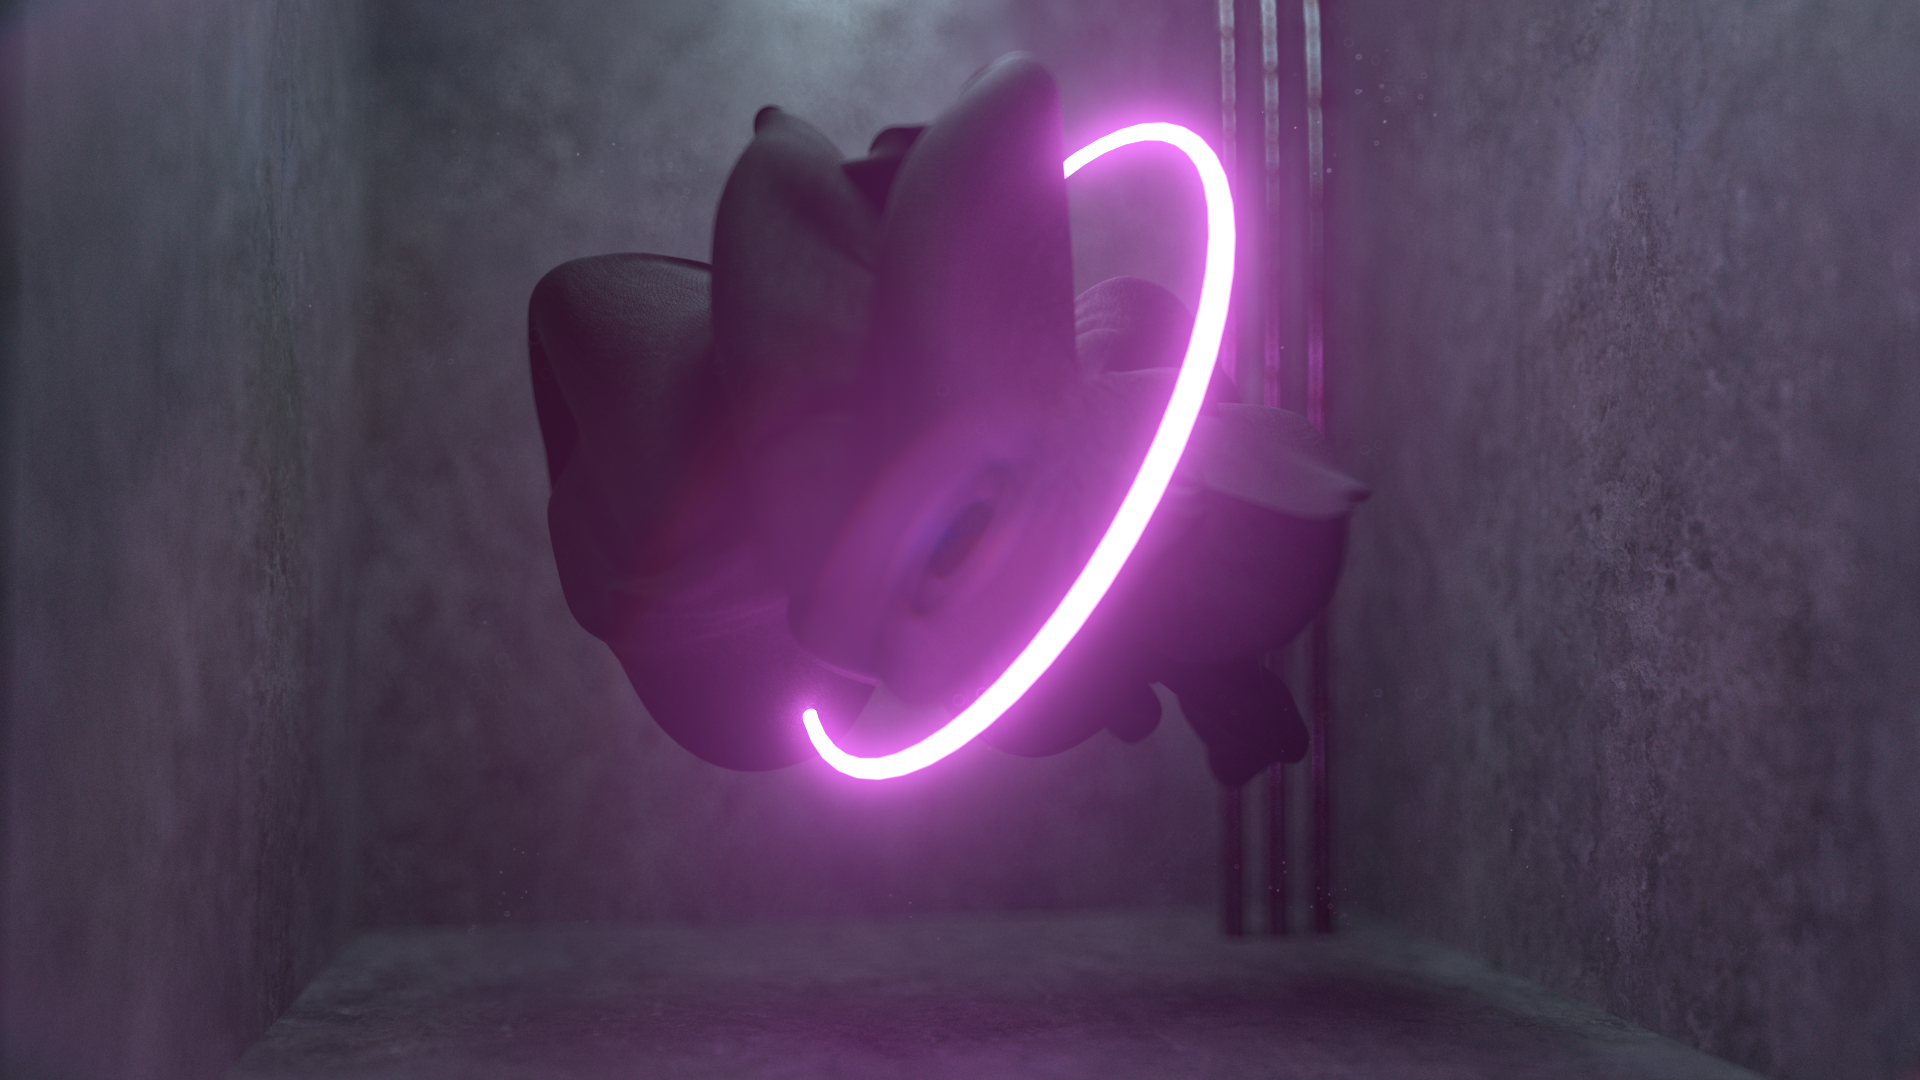 Reel of PixelSavvy's motion design and animation projects.